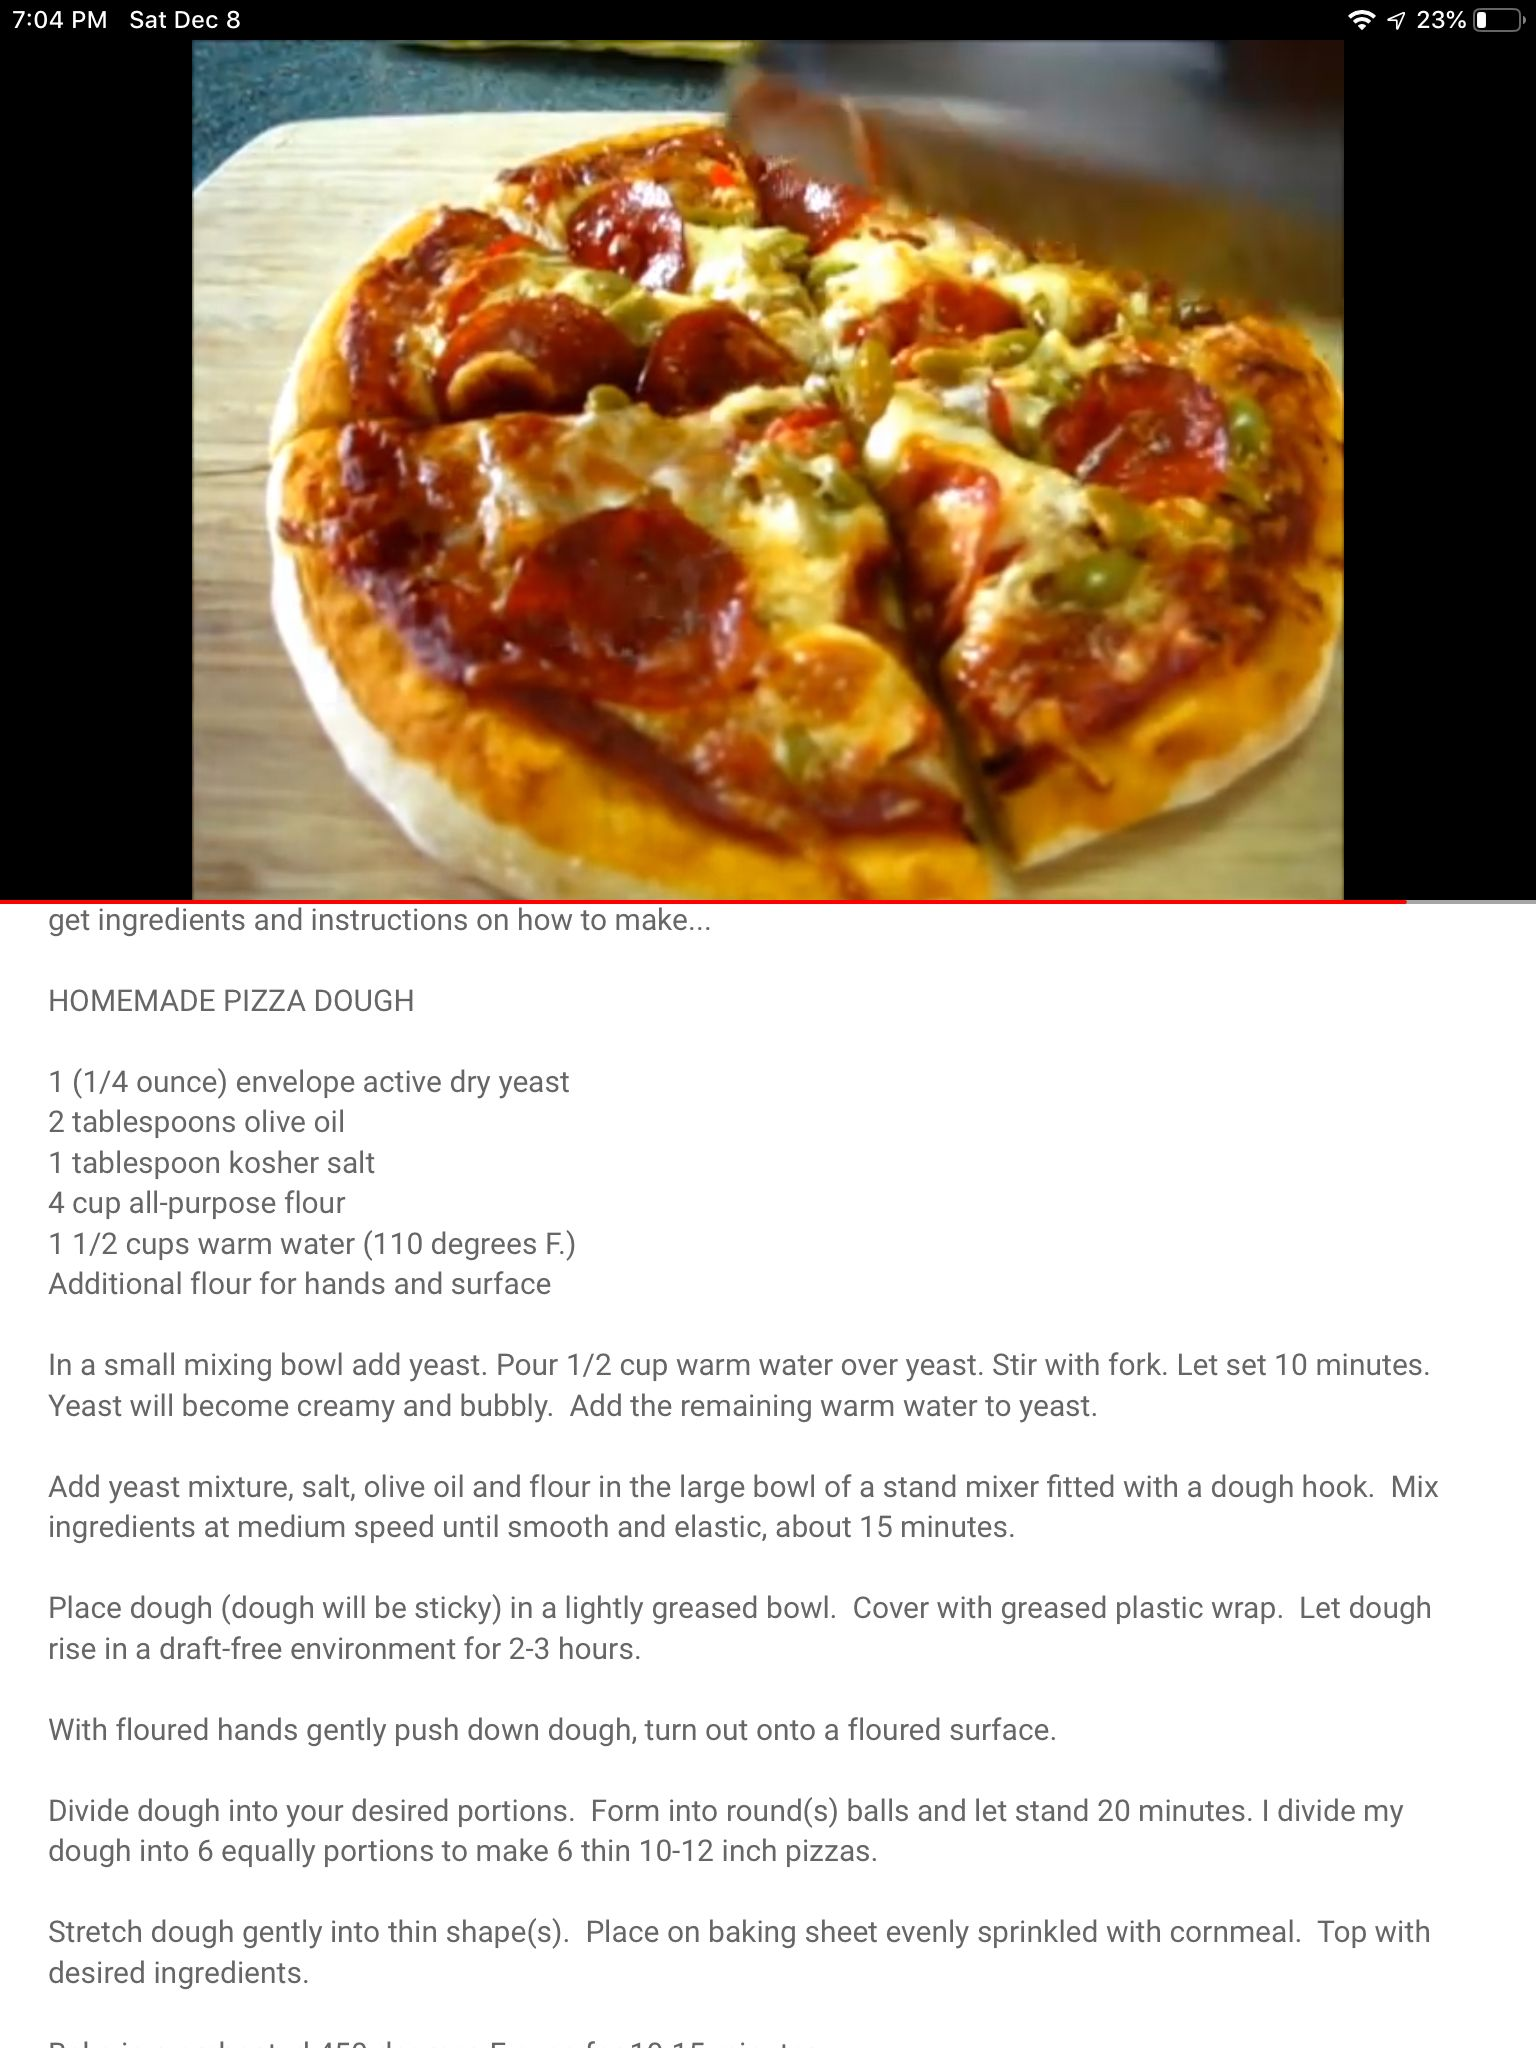 Pin By Sherry Sequeira On Pizza Ideas Food Dry Yeast Pizza Dough